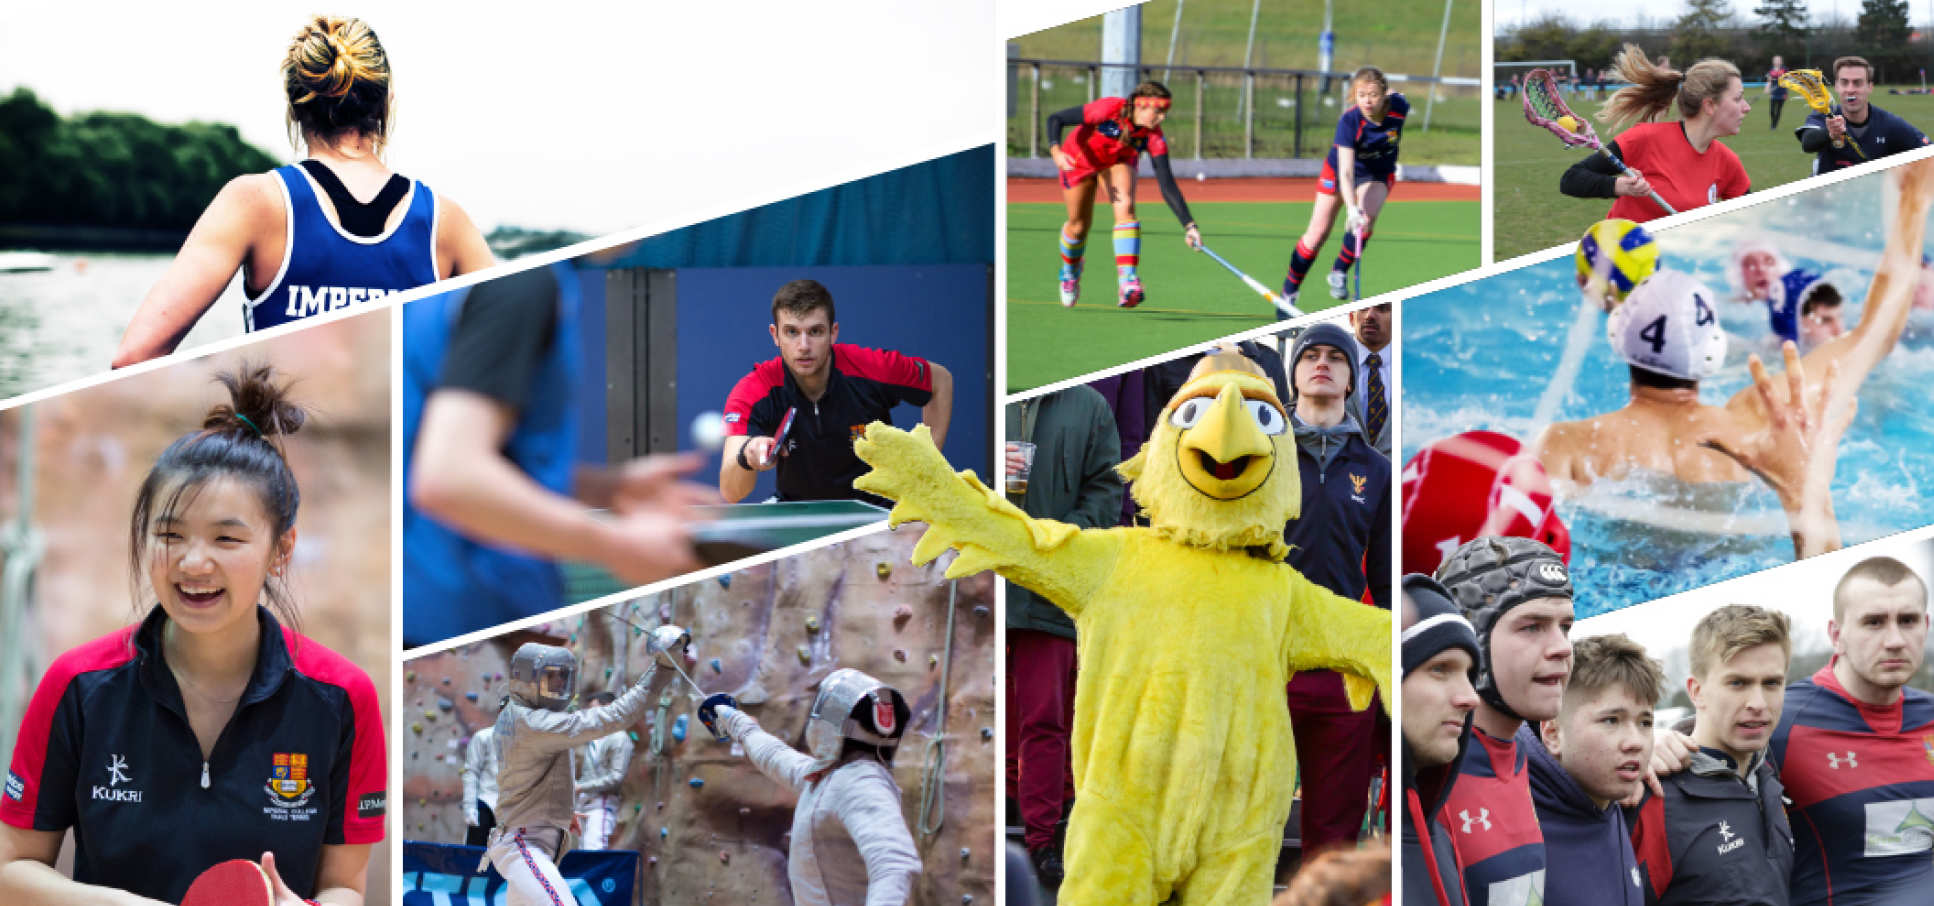 Services of sports clubs: a selection of sites